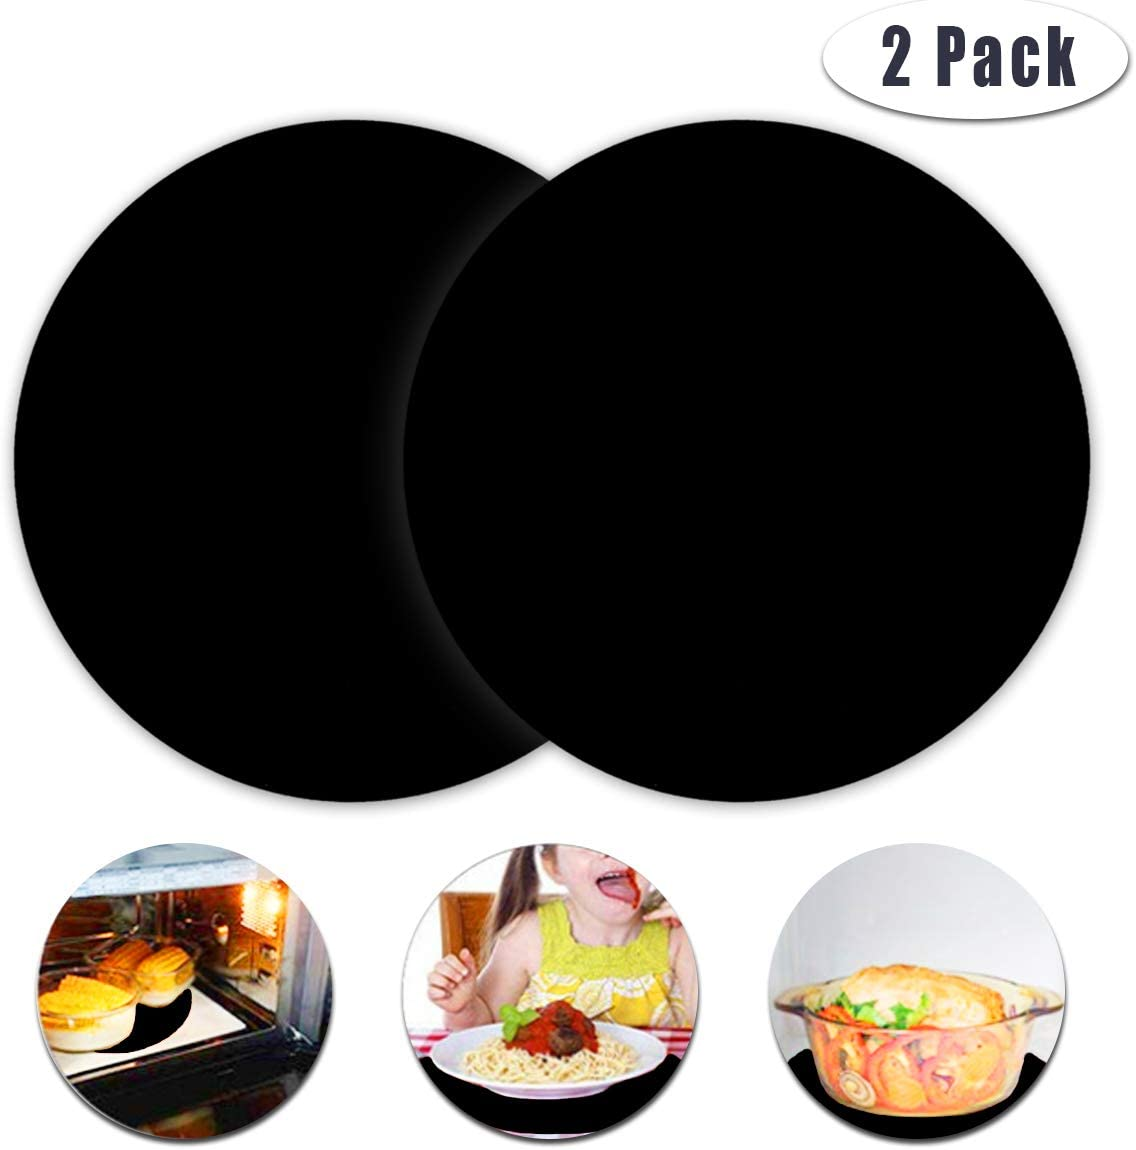 2 Pack Multi-Purpose Silicone Microwave Mat, 12 Inch Non Stick Silicone Baking Mats Oven Mat for Bottom of Oven, Heat Resistant Oven Mat Microwave Trivet Mat (Black)